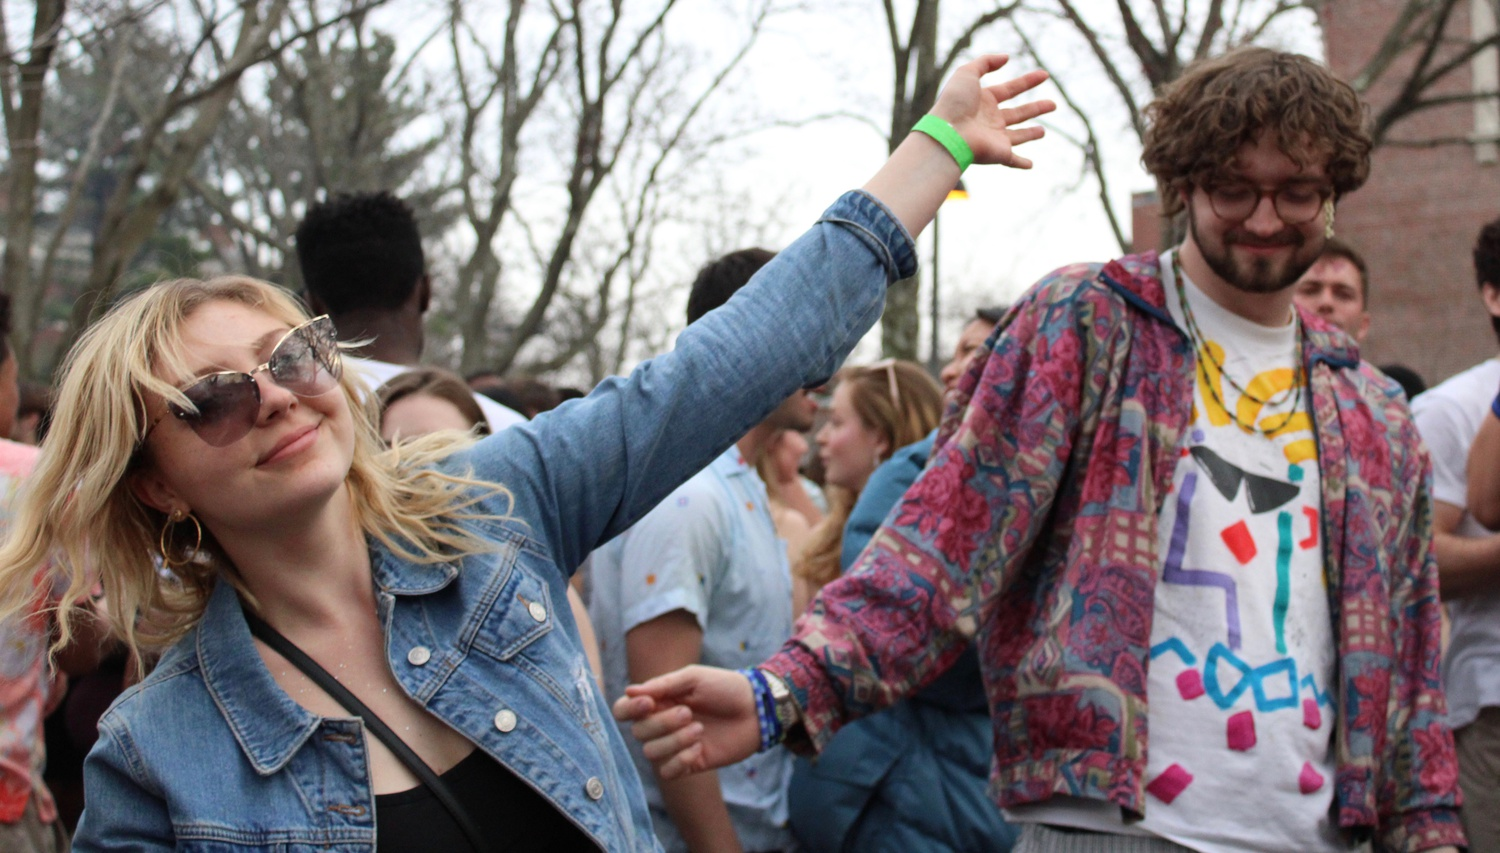 Students dance during the last in-person version of Yardfest, held in Harvard Yard in 2019. This year's version, headlined by Aminé and Trevor Daniel, took place virtually.